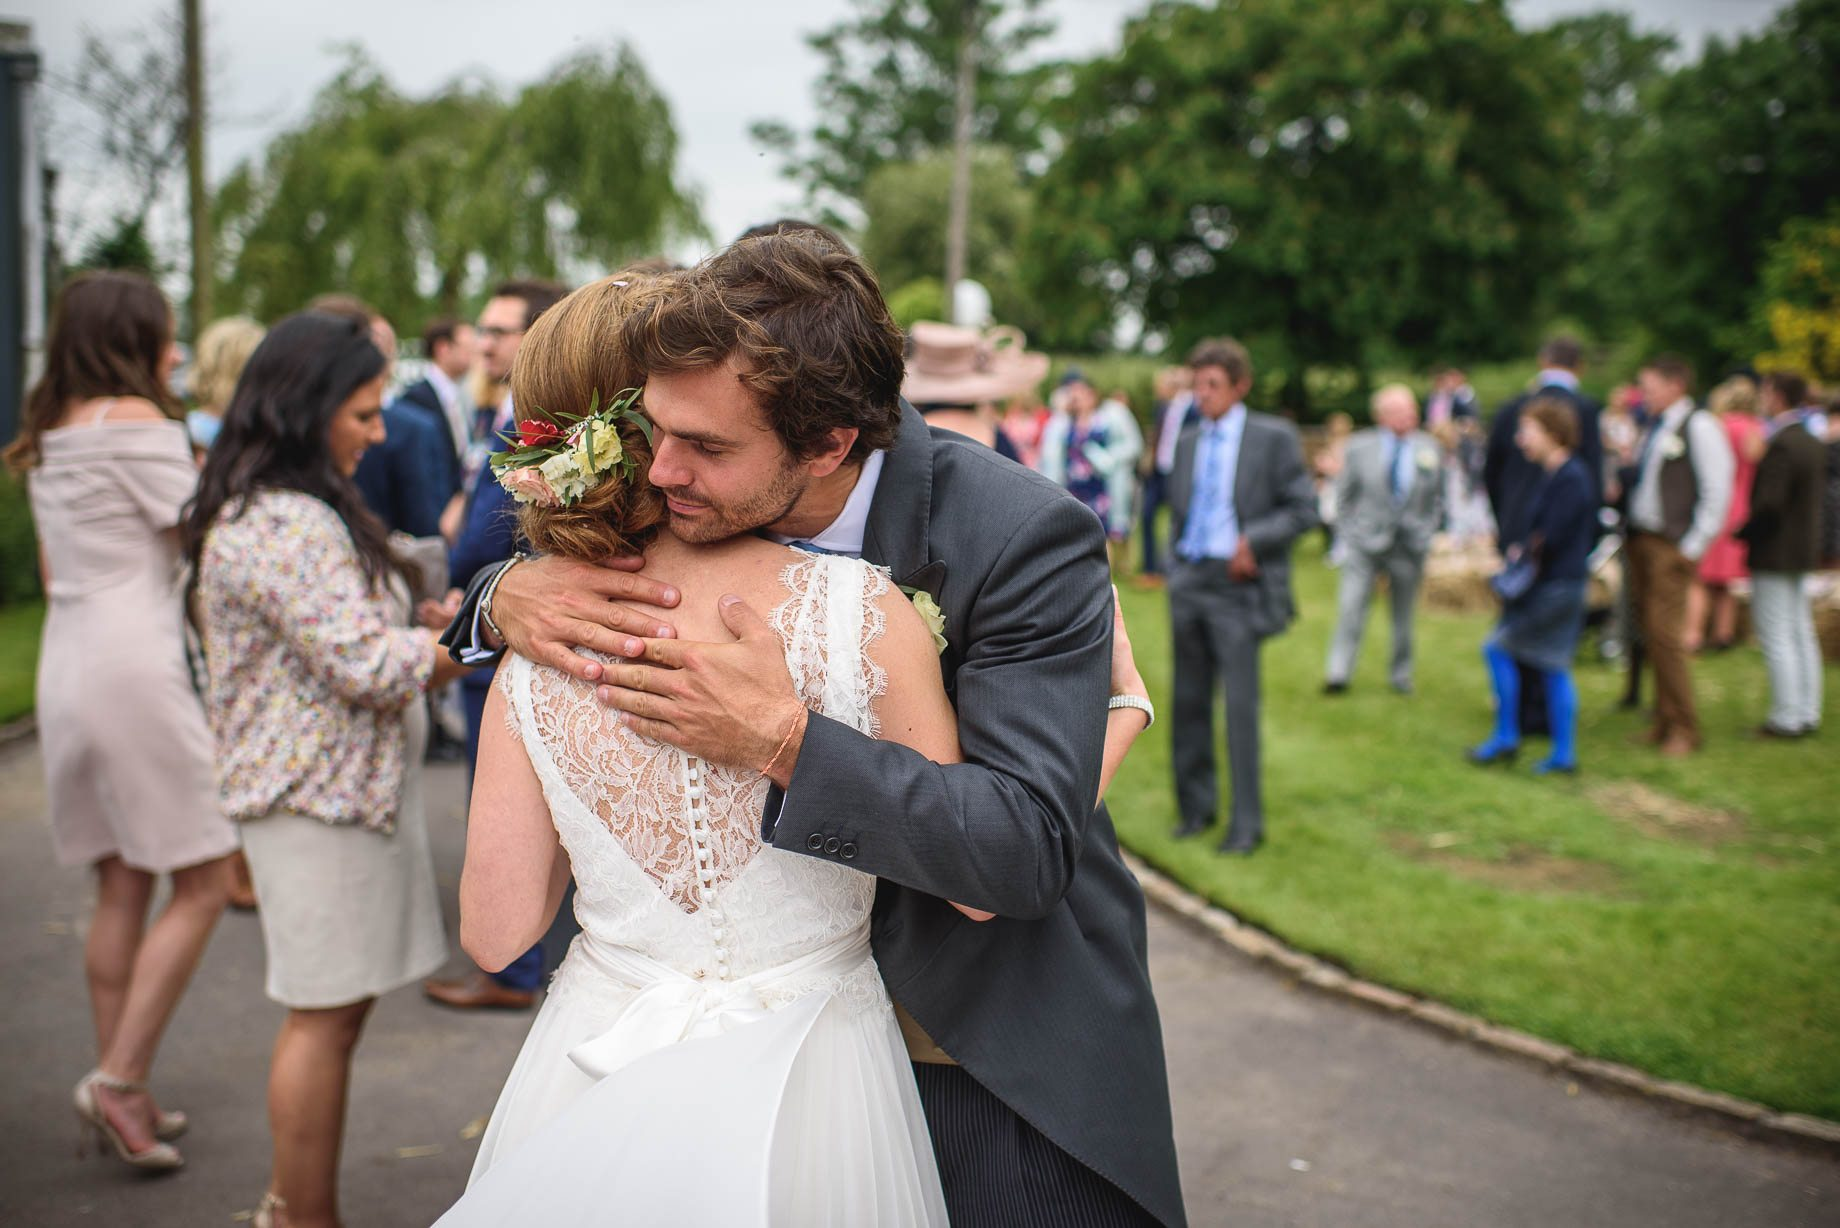 Wiltshire wedding photography by Guy Collier - Lucie and Matt (74 of 198)